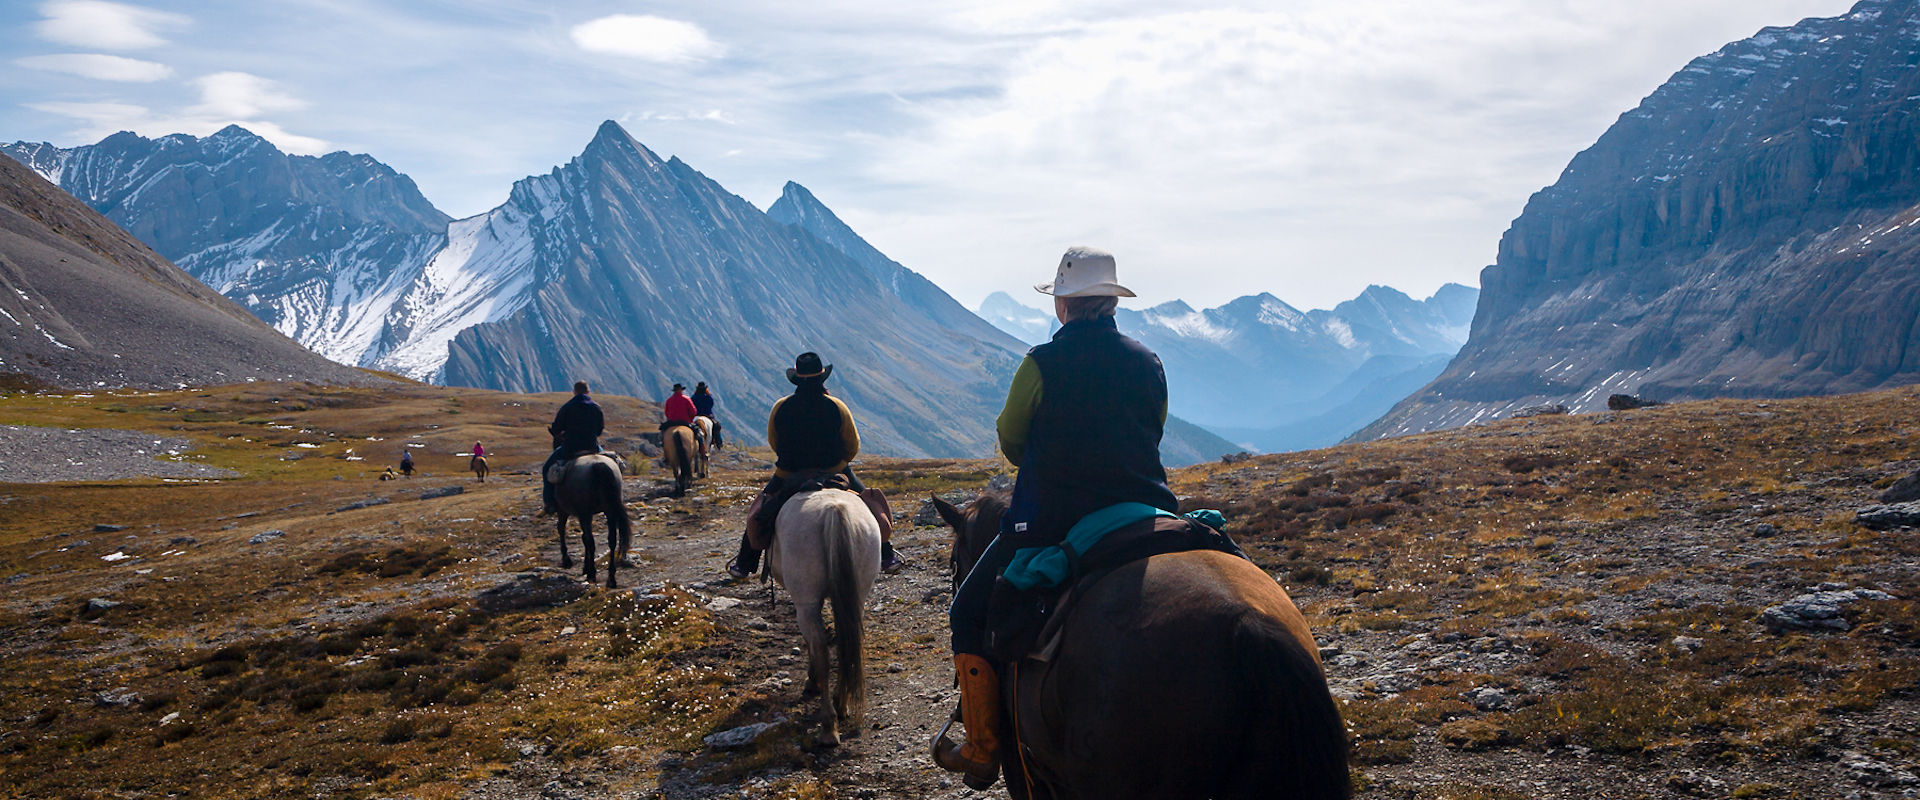 Halfway Lodge Backcountry Trip in Banff, Canadian Rockies with Banff Trail Riders